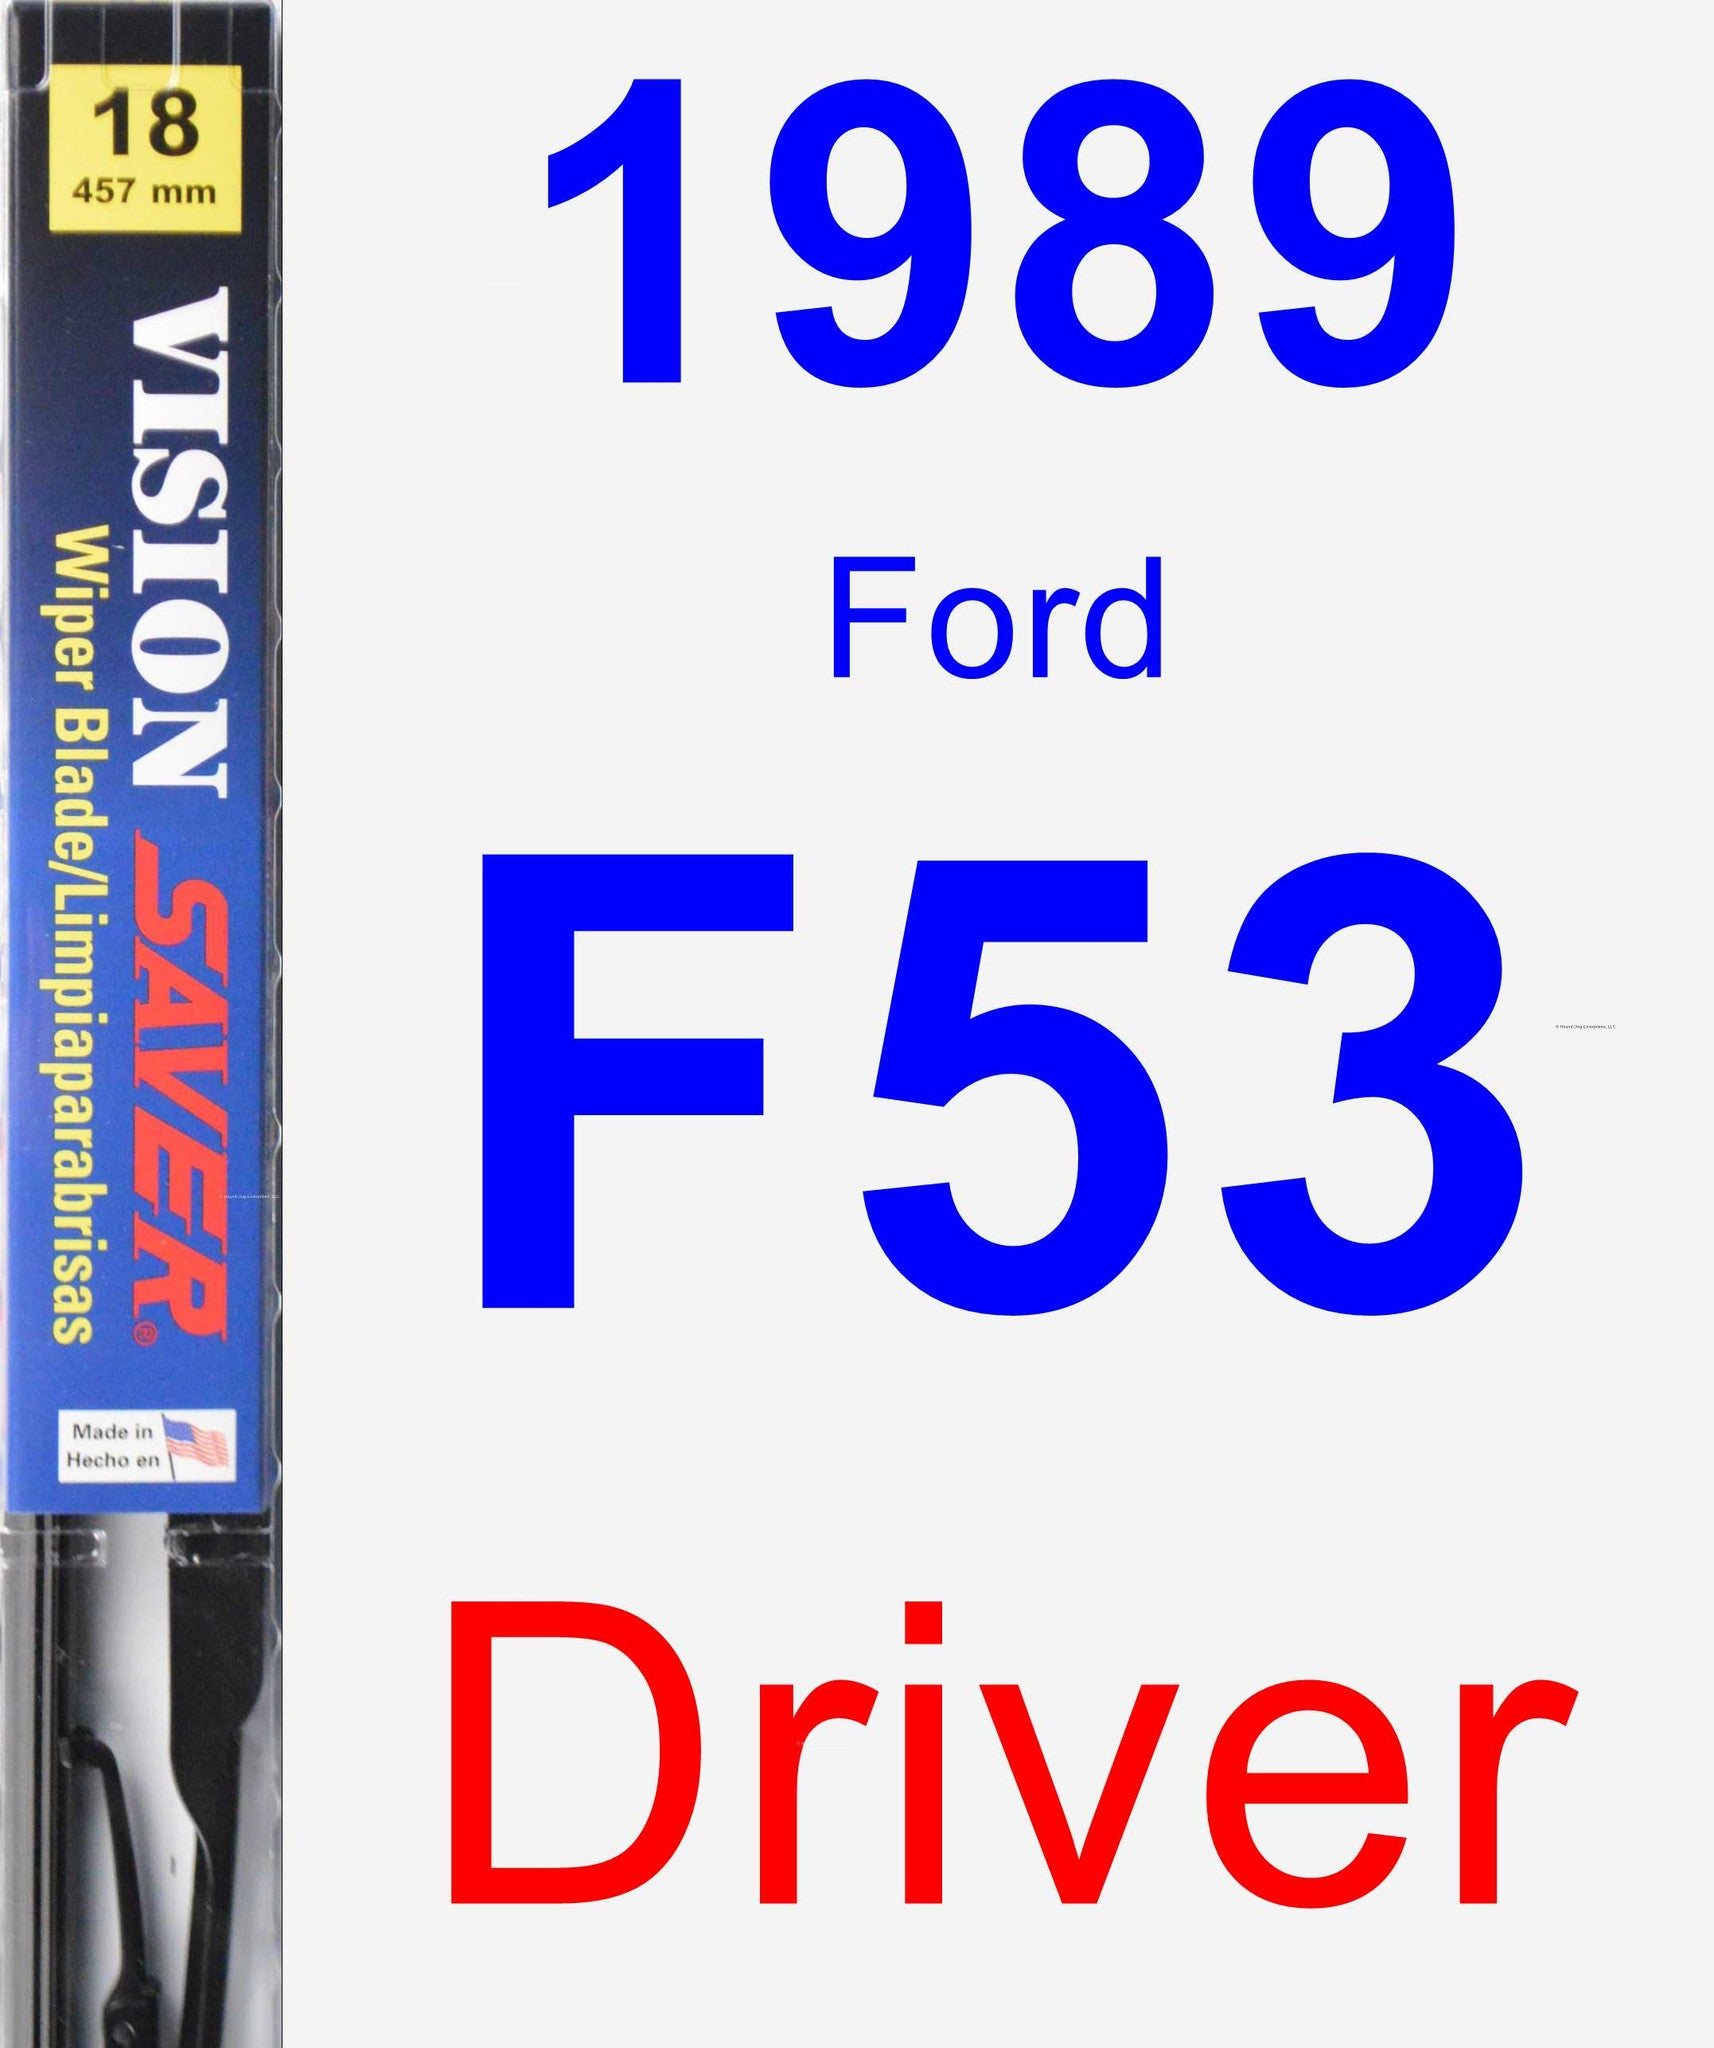 Driver Wiper Blade for 1989 Ford F53 - Vision Saver